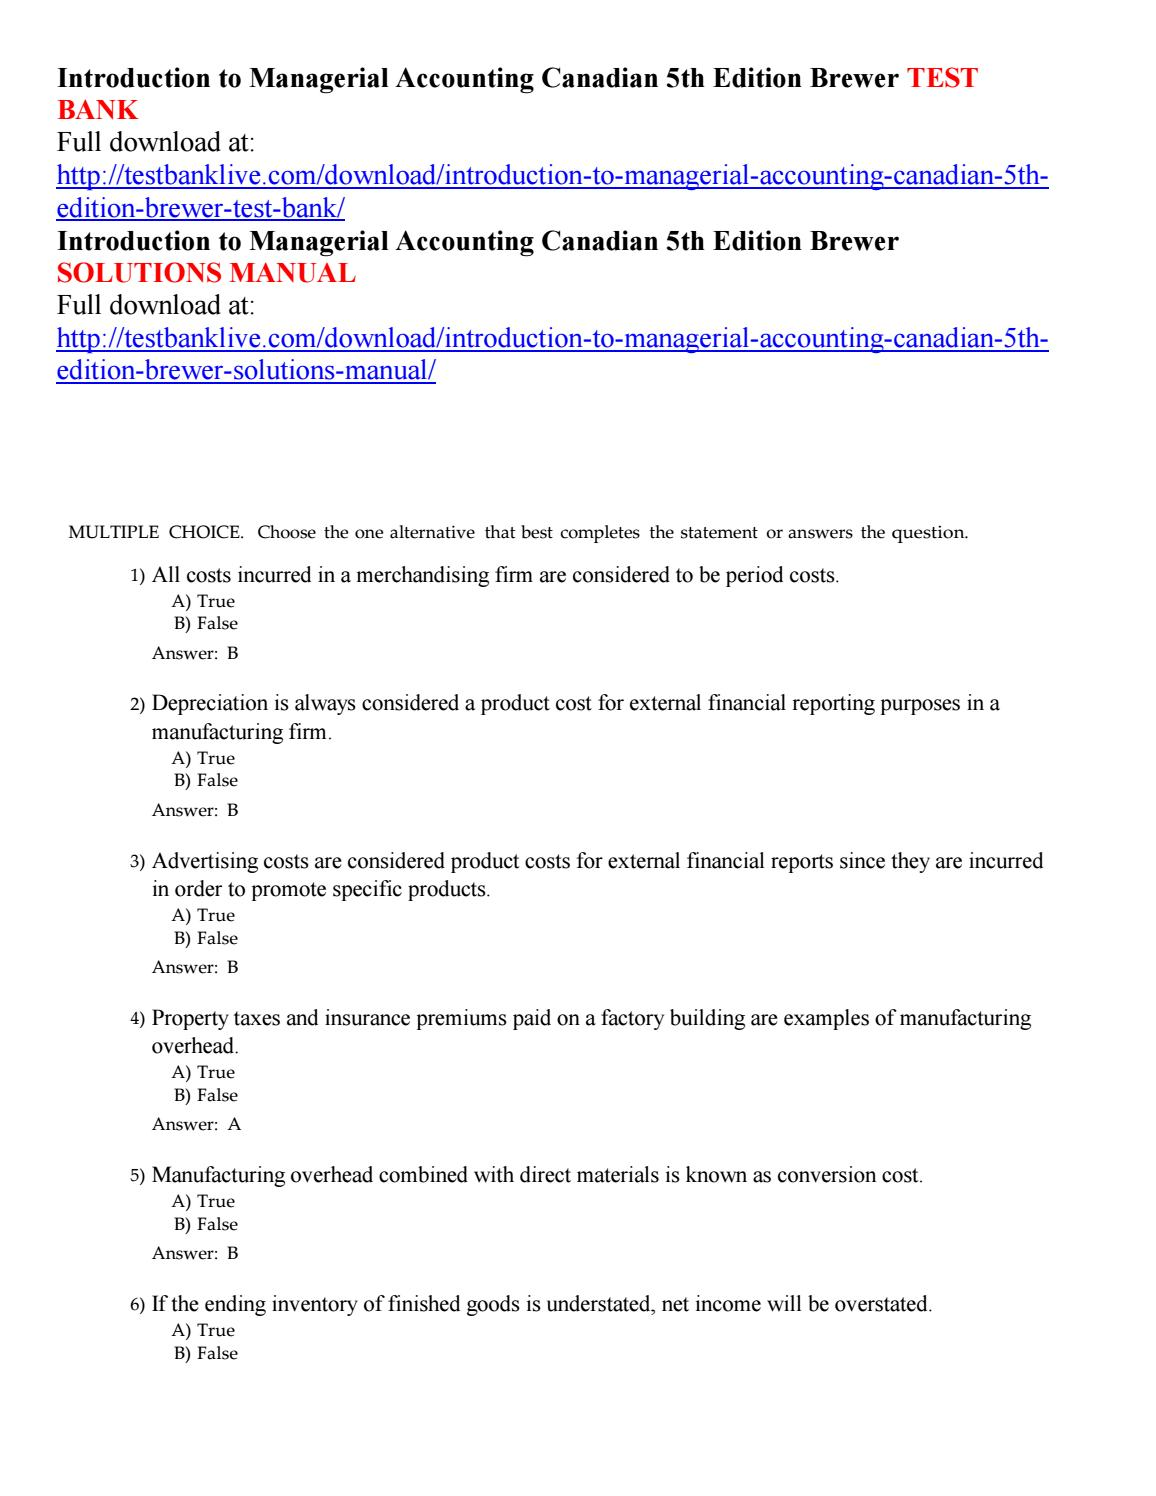 Introduction to managerial accounting canadian 5th edition brewer test bank  by Trixie5555 - issuu